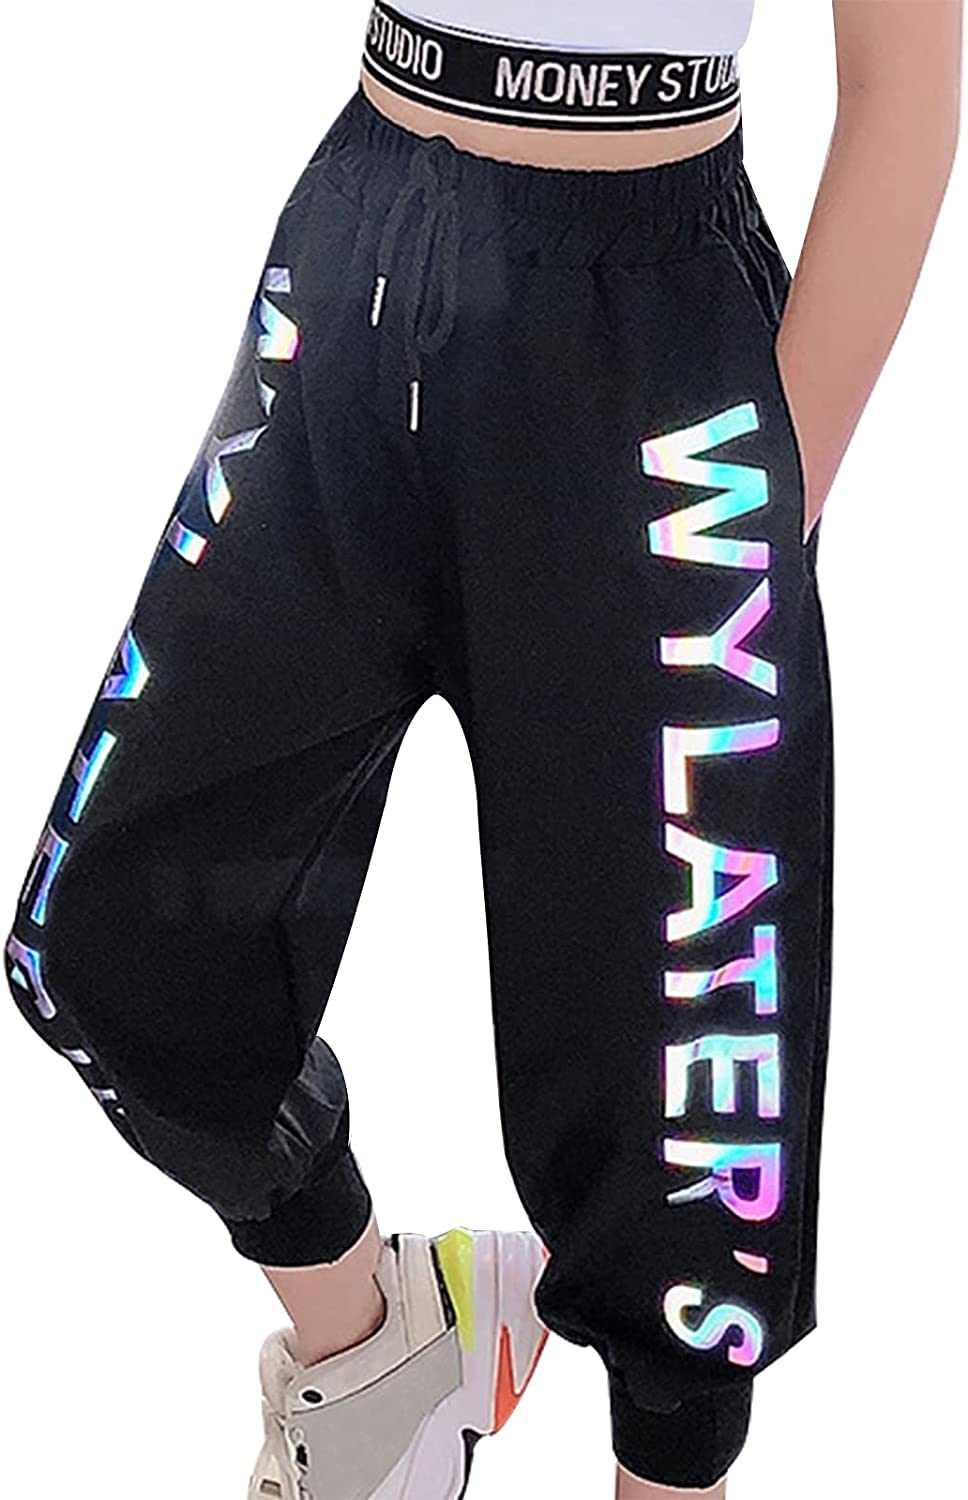 easyforever Girls Sparkly Letters Print Sweat Pants High Waist Elastic Waistband Cropped Trousers with Drawstring